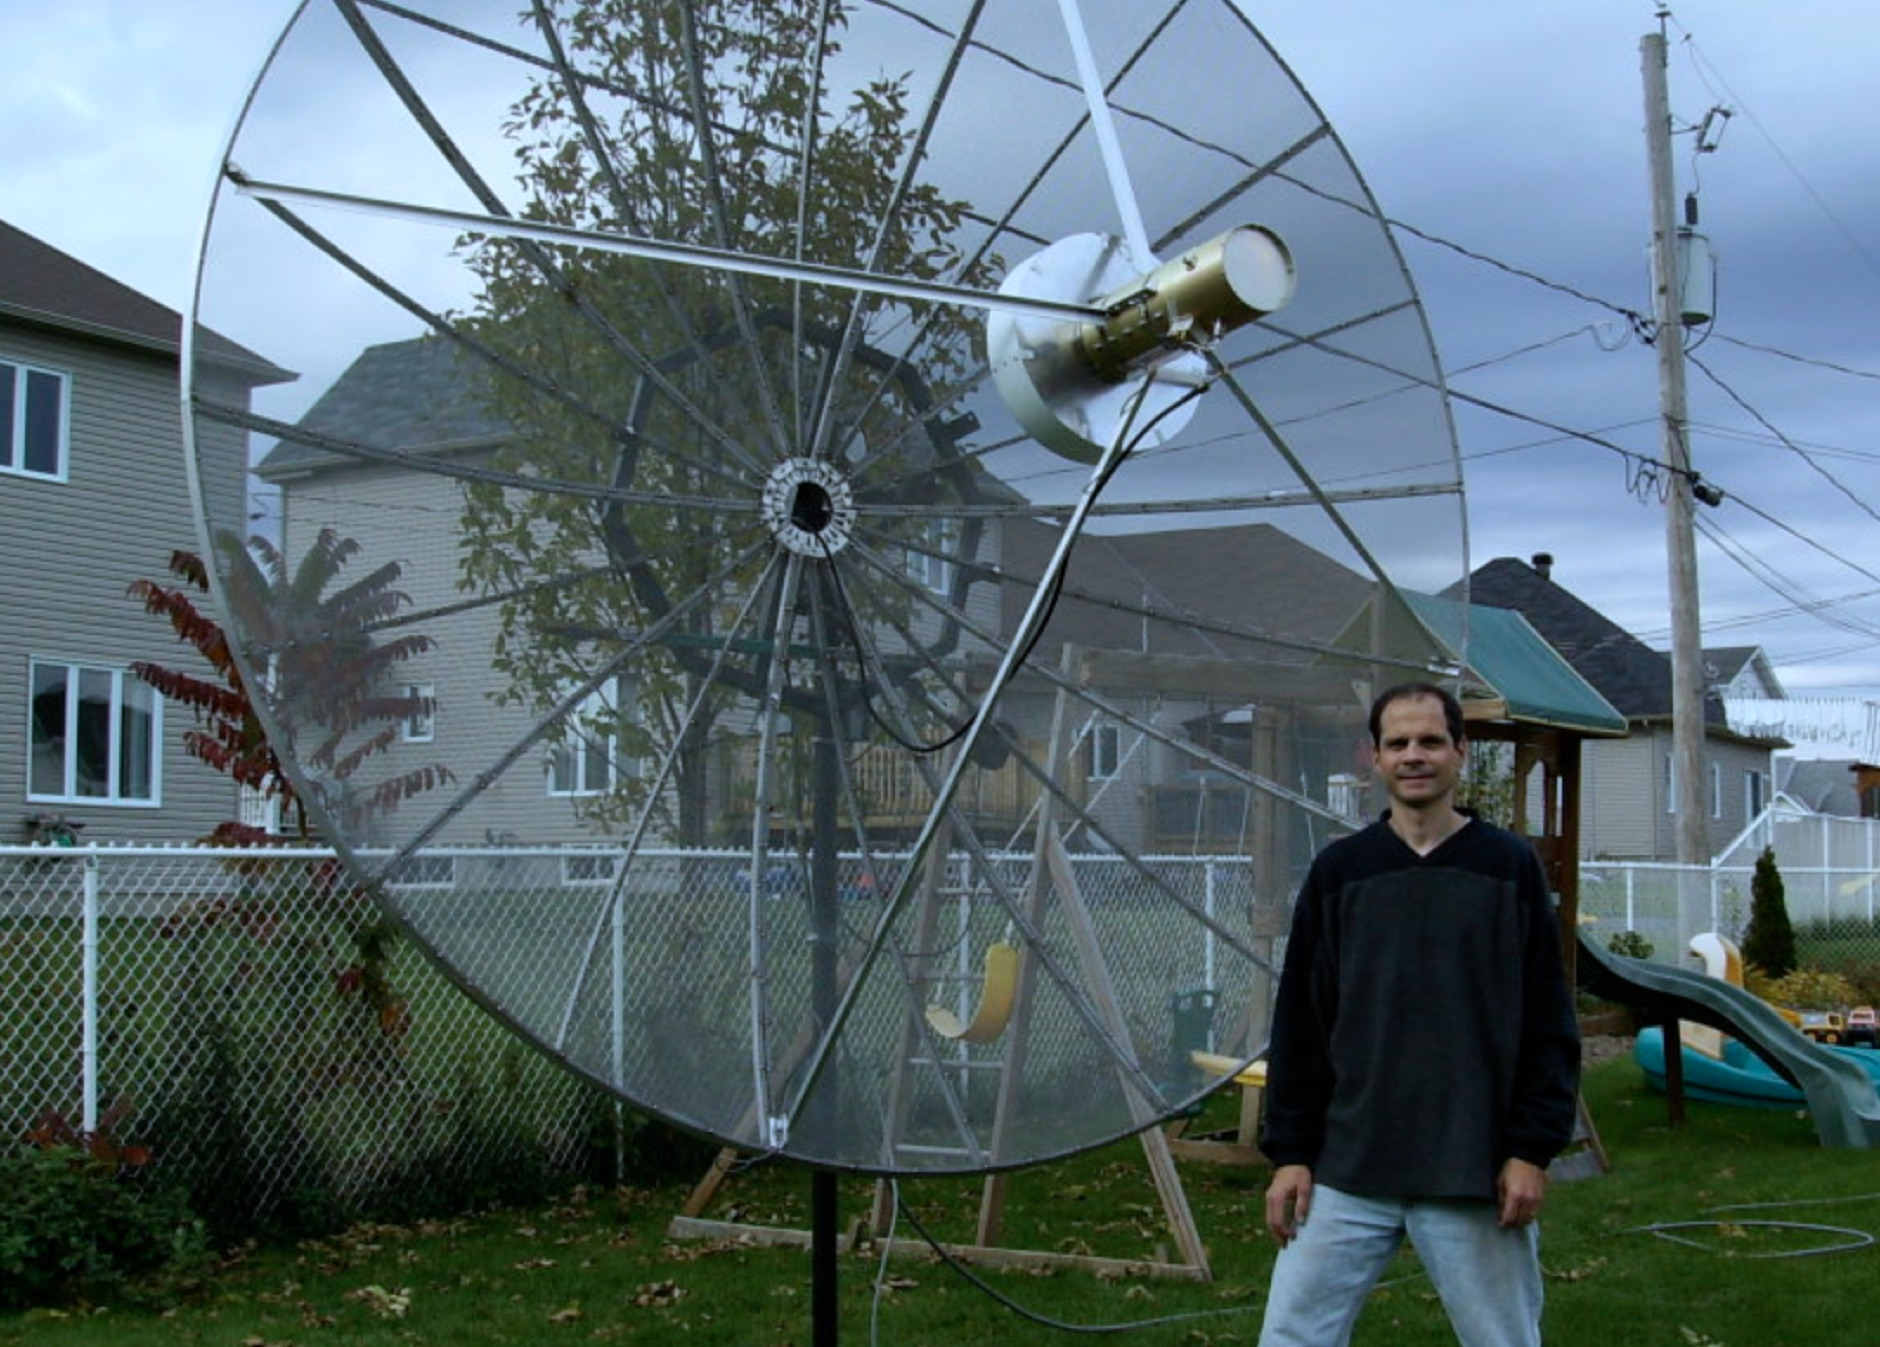 EME Dish Antenna Project